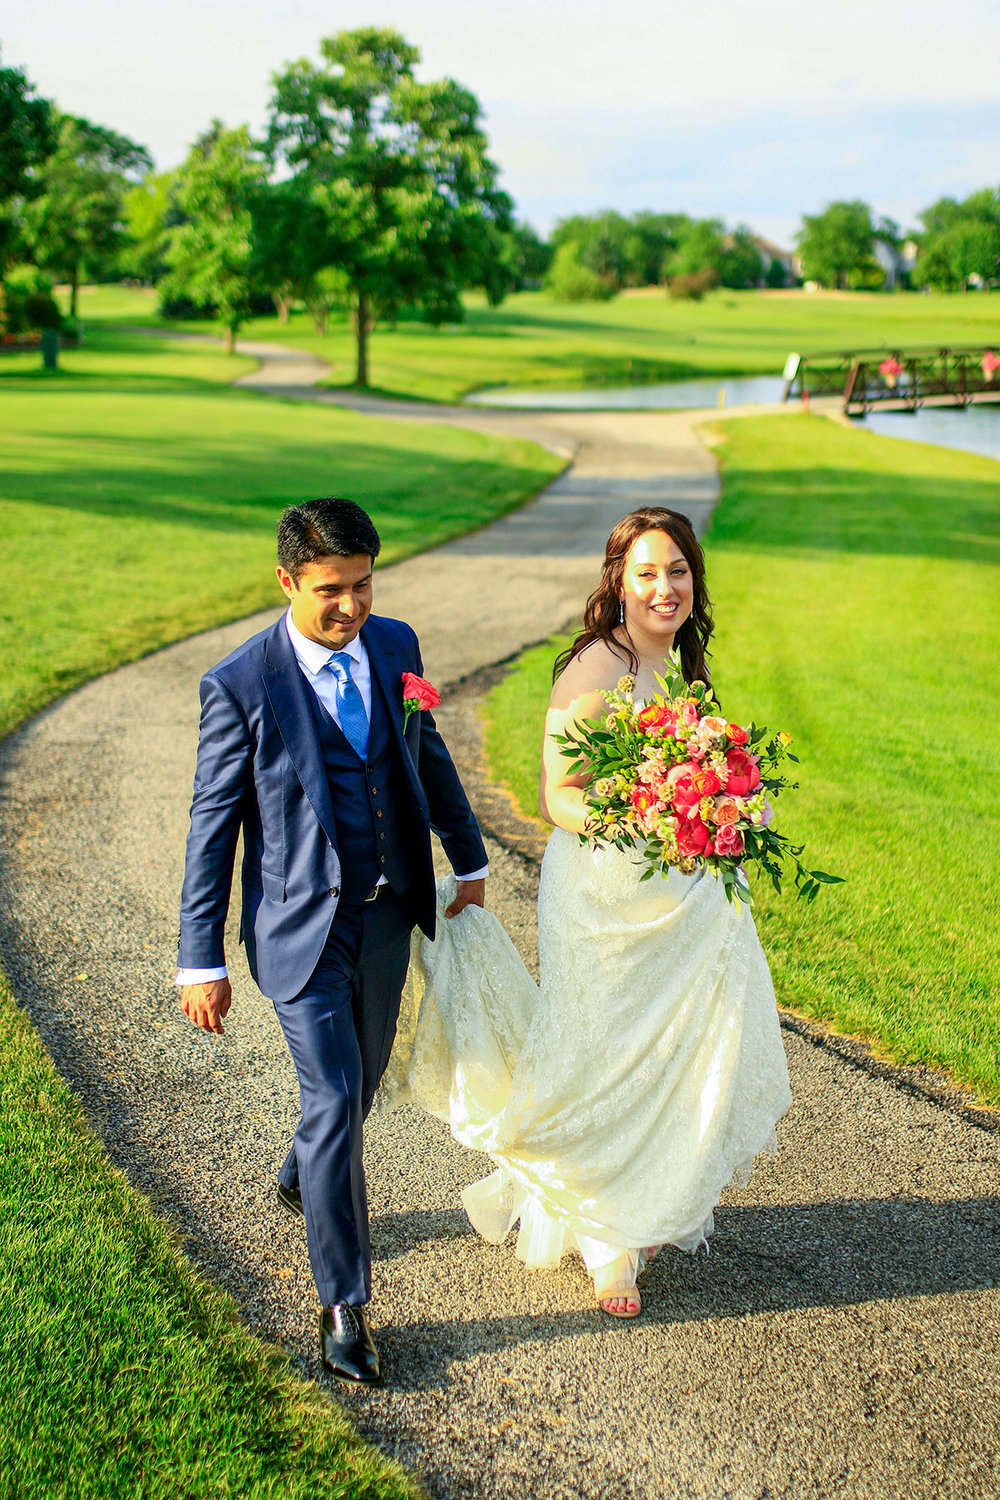 Wedding_Chicago_Anurag_Christine_13.JPG